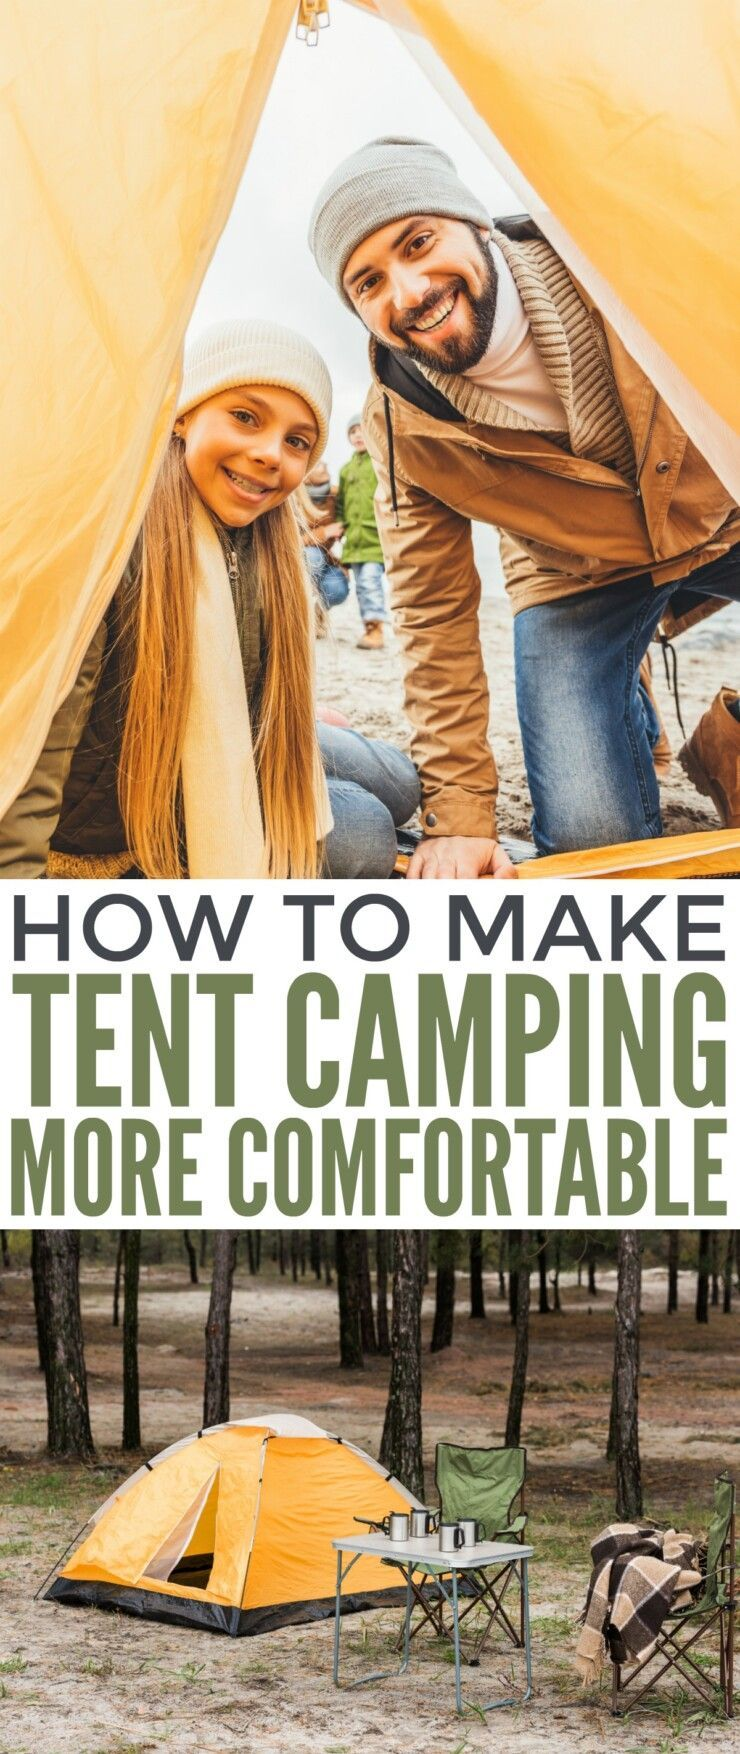 making tent camping more comfortable  zeltcamping komfortabler machen making tent camping more comfortable  Familiale tent camping  Design tent camping  Astuces tent camp...